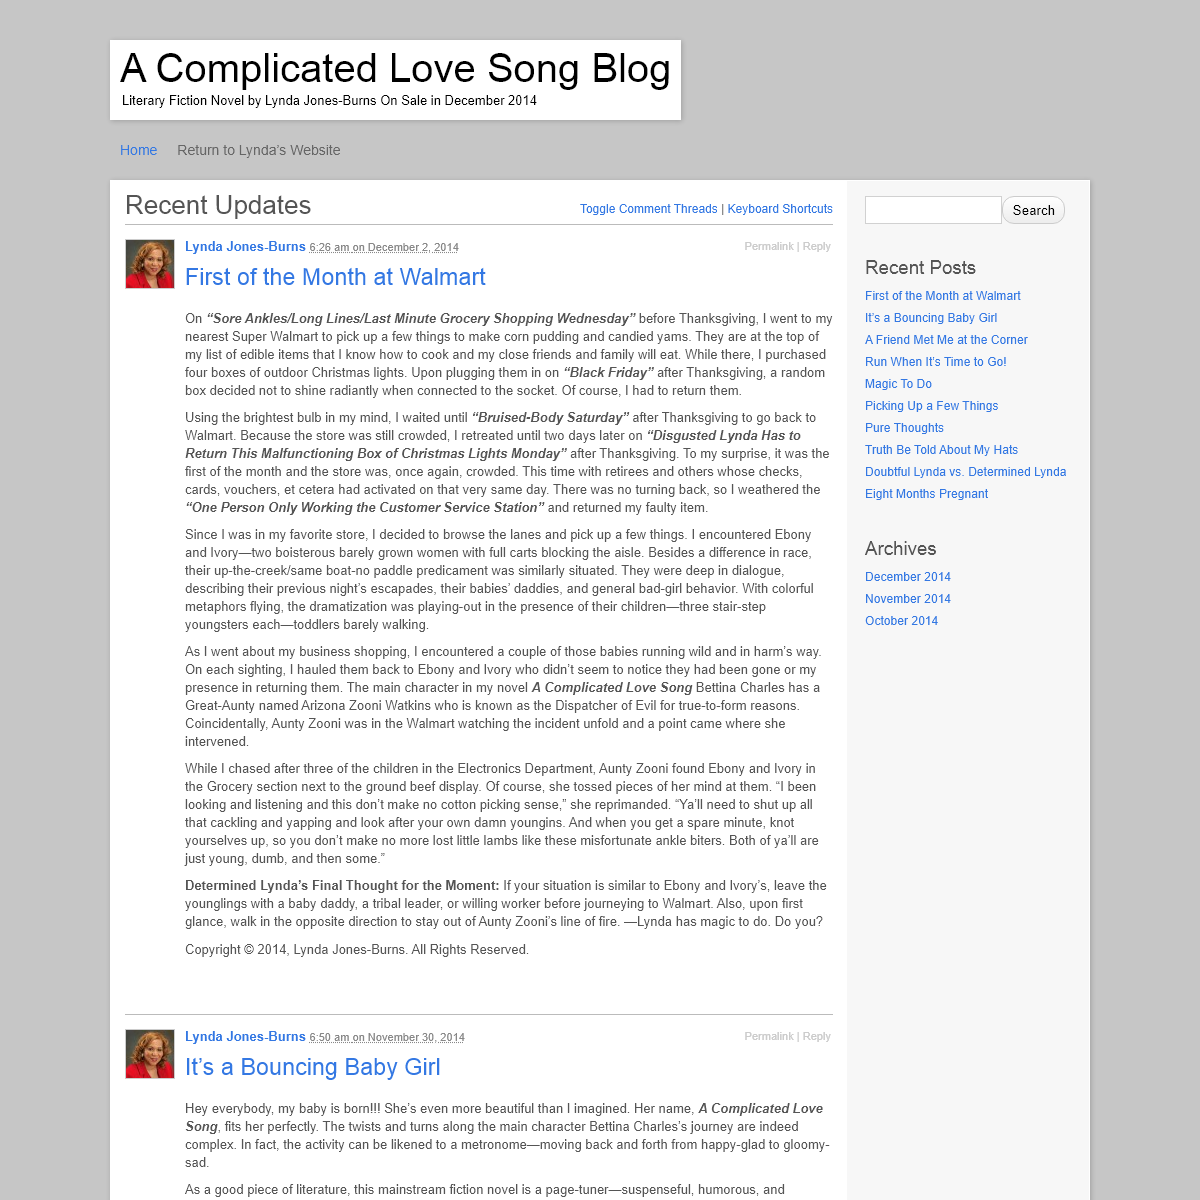 A Complicated Love Song Blog - Literary Fiction Novel by Lynda Jones-Burns On Sale in December 2014